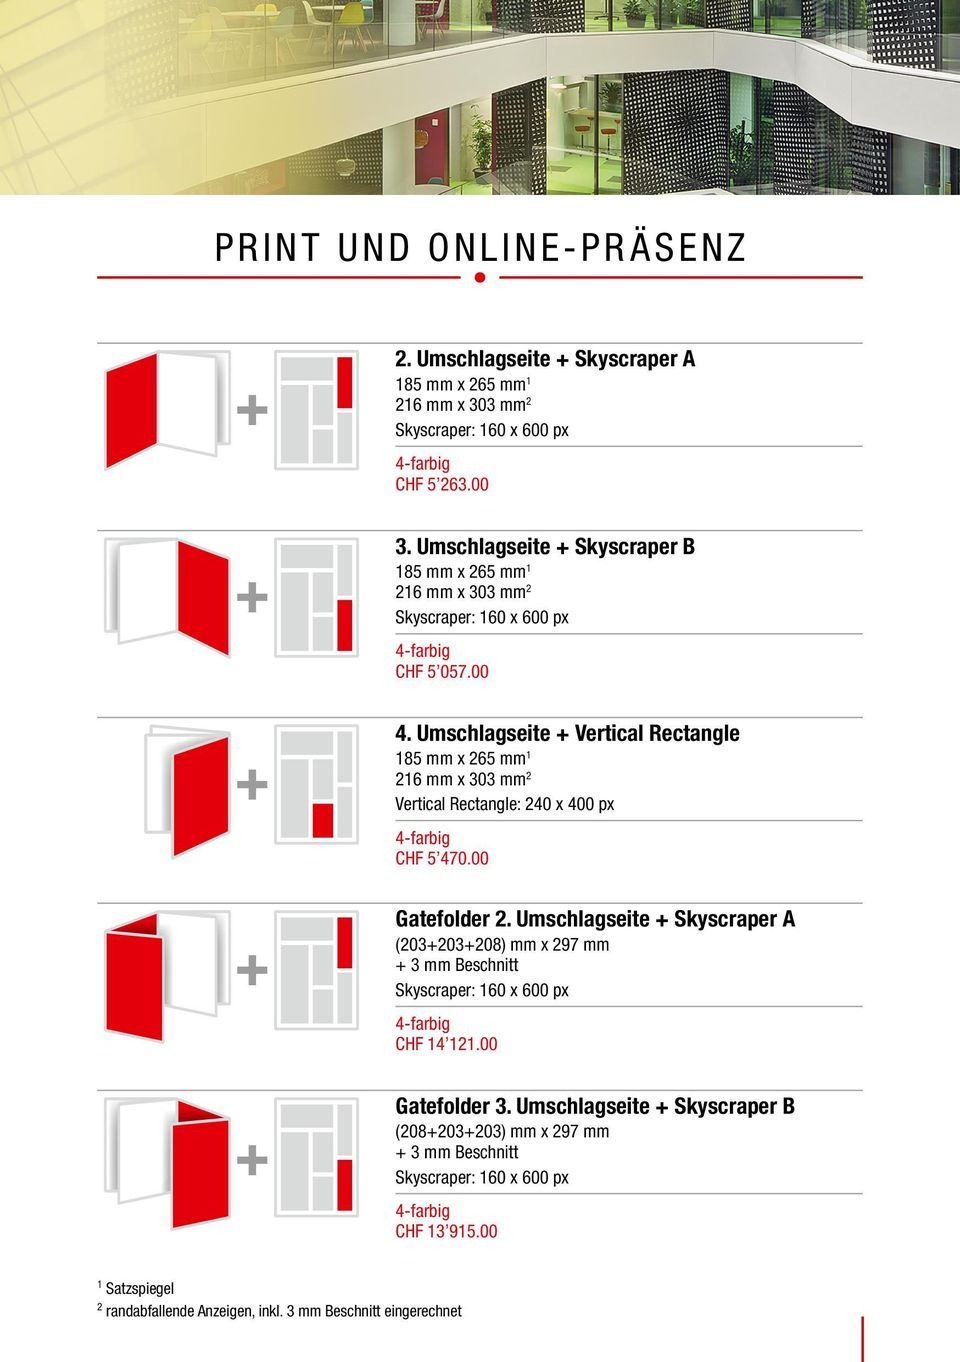 Umschlagseite Vertical Rectangle Vertical Rectangle: 240 x 400 px CHF 5 470.00 Gatefolder 2.